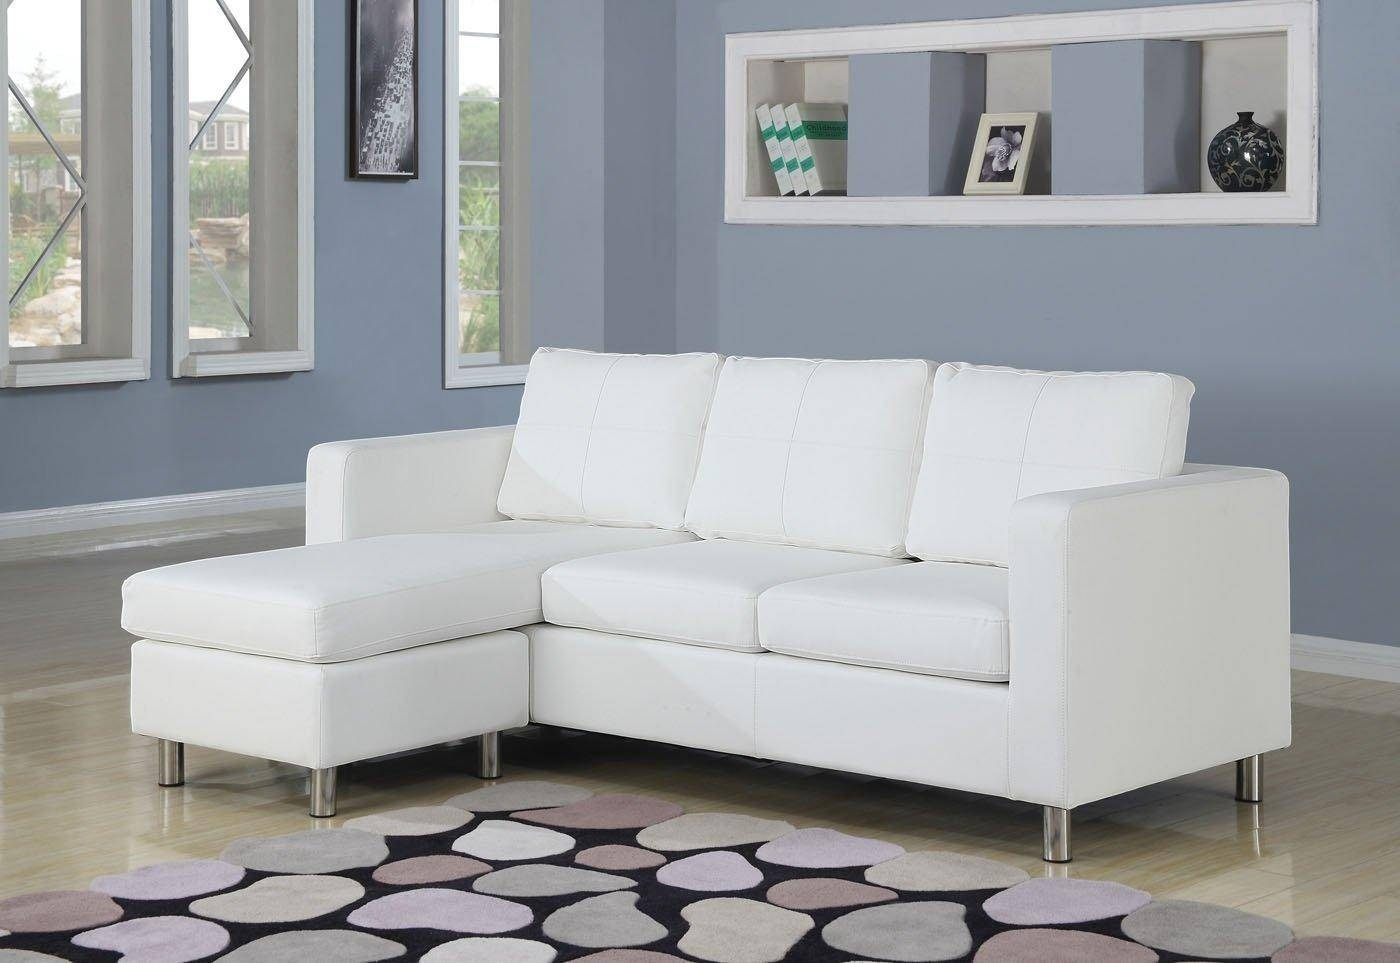 20+ Choices Of Small Scale Leather Sectional Sofas | Sofa Ideas with regard to Small